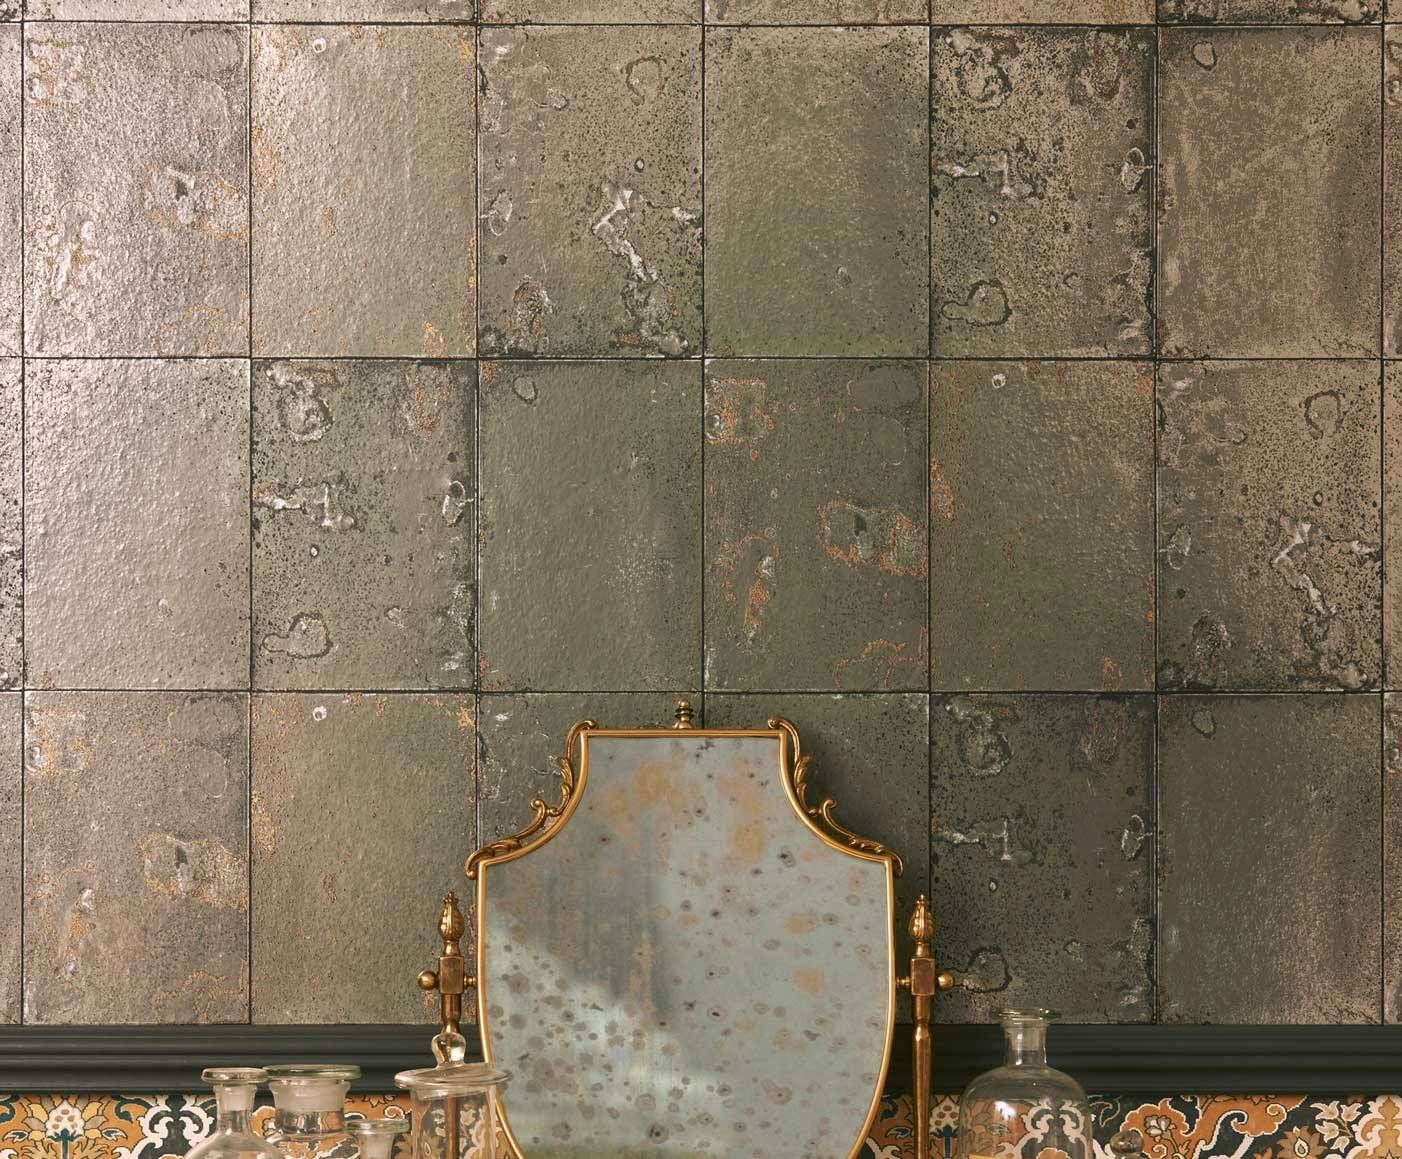 Cole Son This Antique Mirror Wallpaper Uses Reclaimed Tiles As Its Inspiration And Adding A Touch Of Vintage Foxed Effect It Creates Dramatic